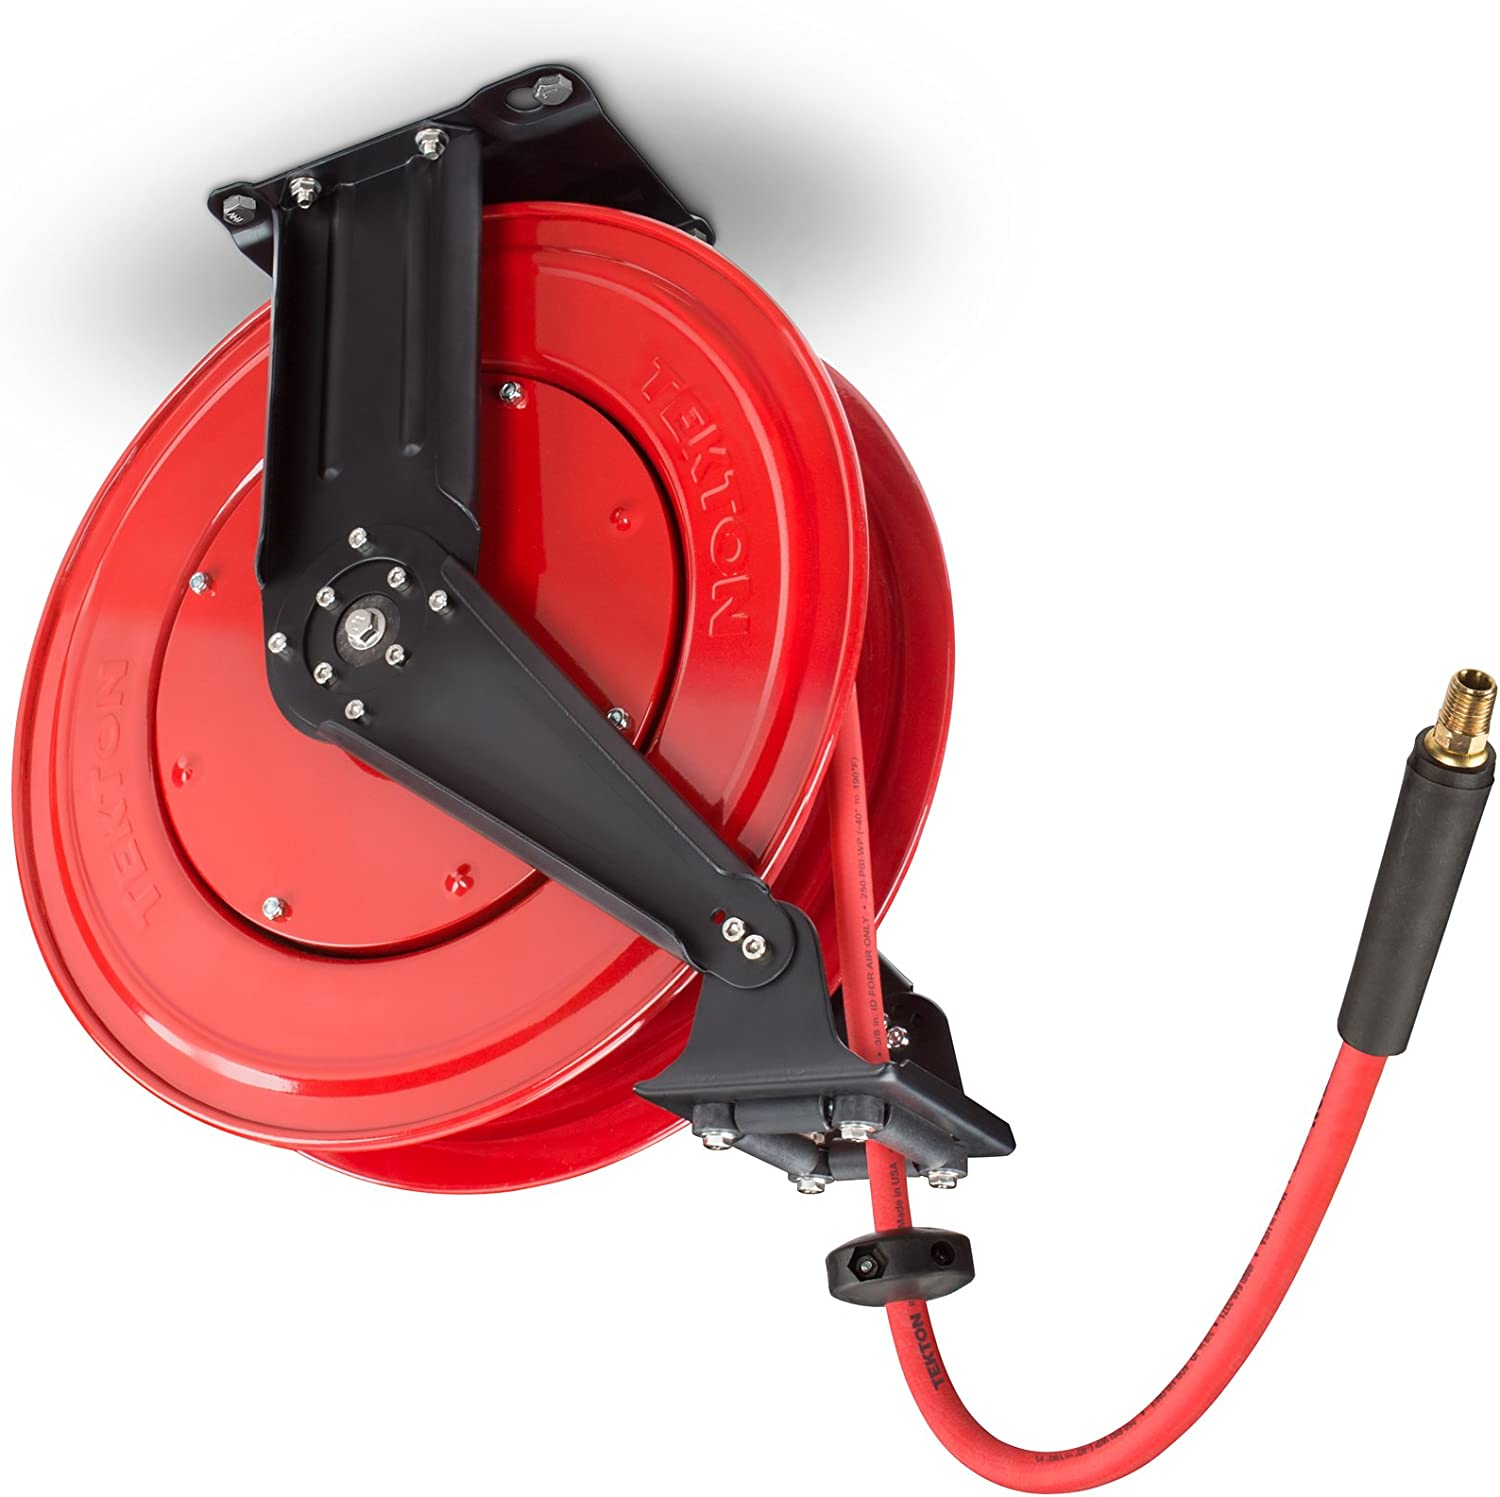 TEKTON 50-Foot by 3/8-Inch I.D. Dual Arm Auto Rewind Air Hose Reel with USA-Made Rubber Air Hose (250 PSI) | 46875 - -